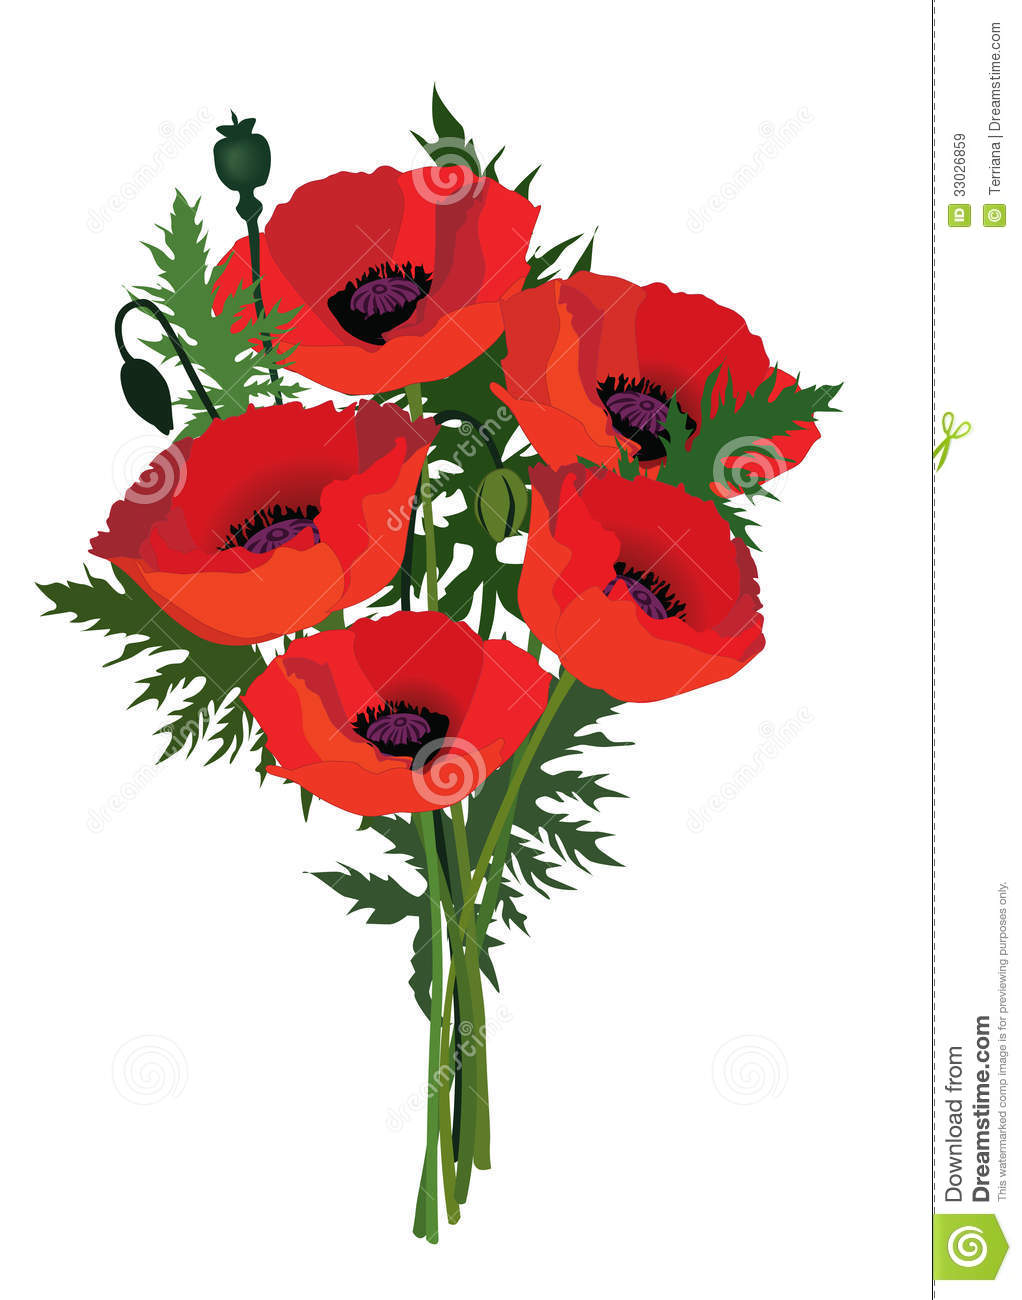 Flower Poppy Bouquet Stock Image Image Of Collection 33026859